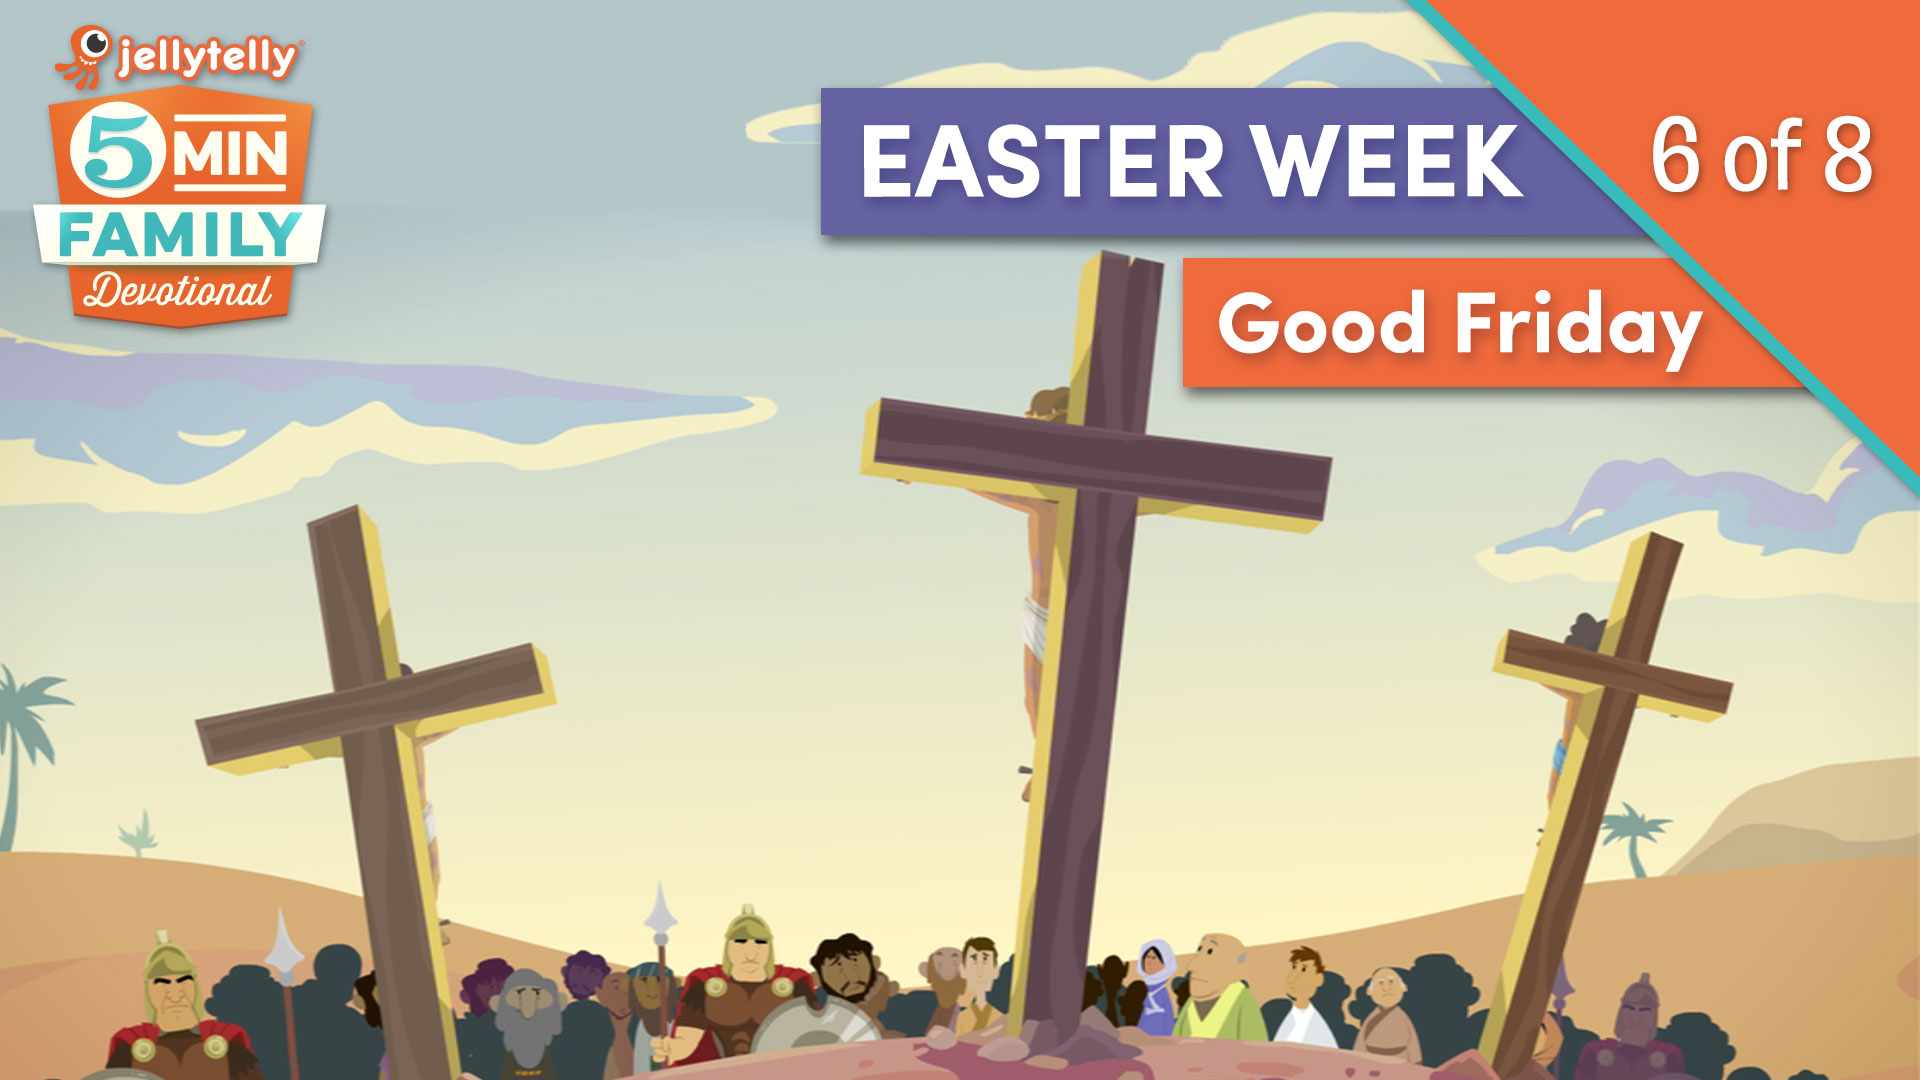 5mfd easter 06 good friday preview image